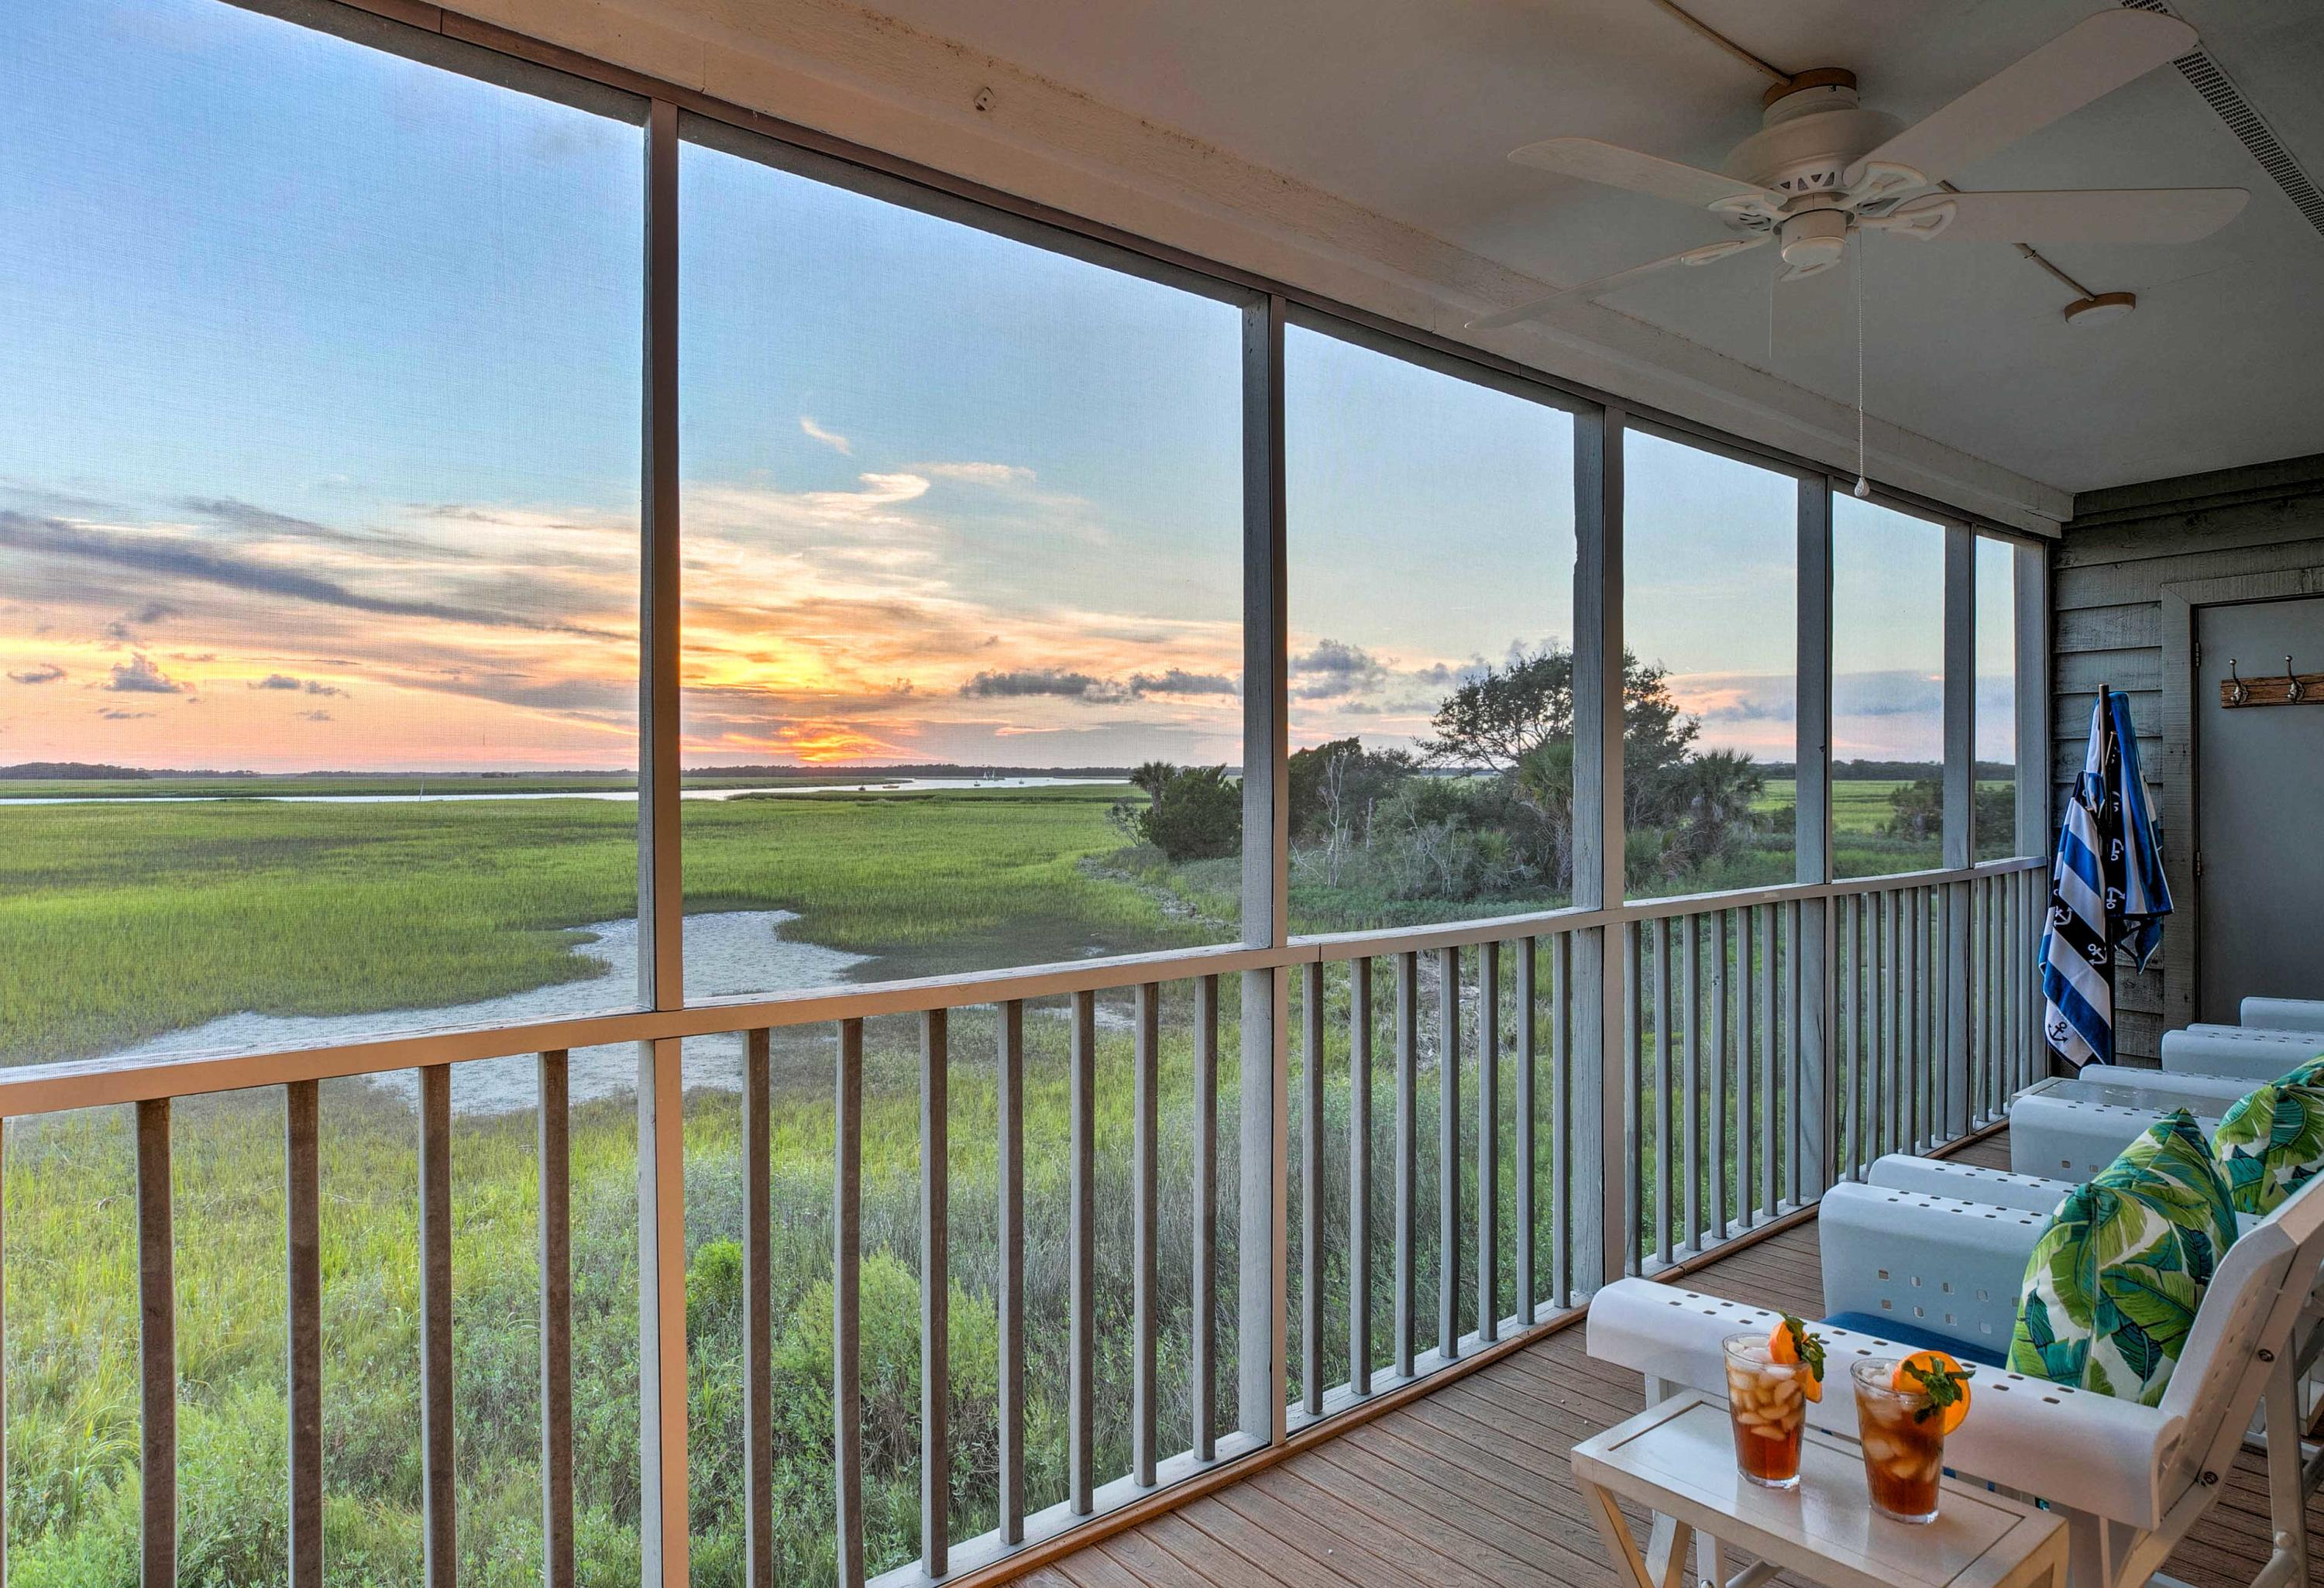 Mariners Cay Homes For Sale - 93 Mariners Cay, Folly Beach, SC - 19